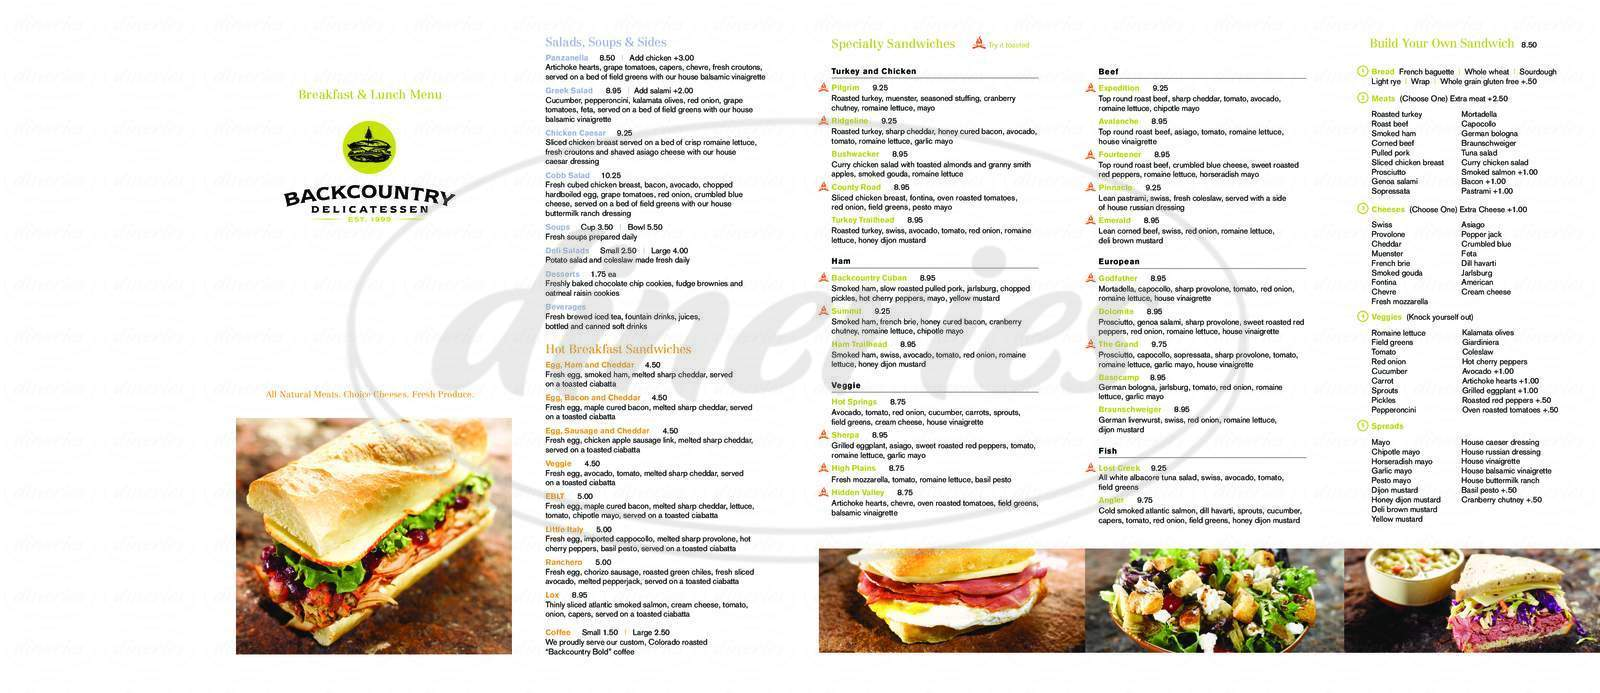 menu for Backcountry Delicatessen